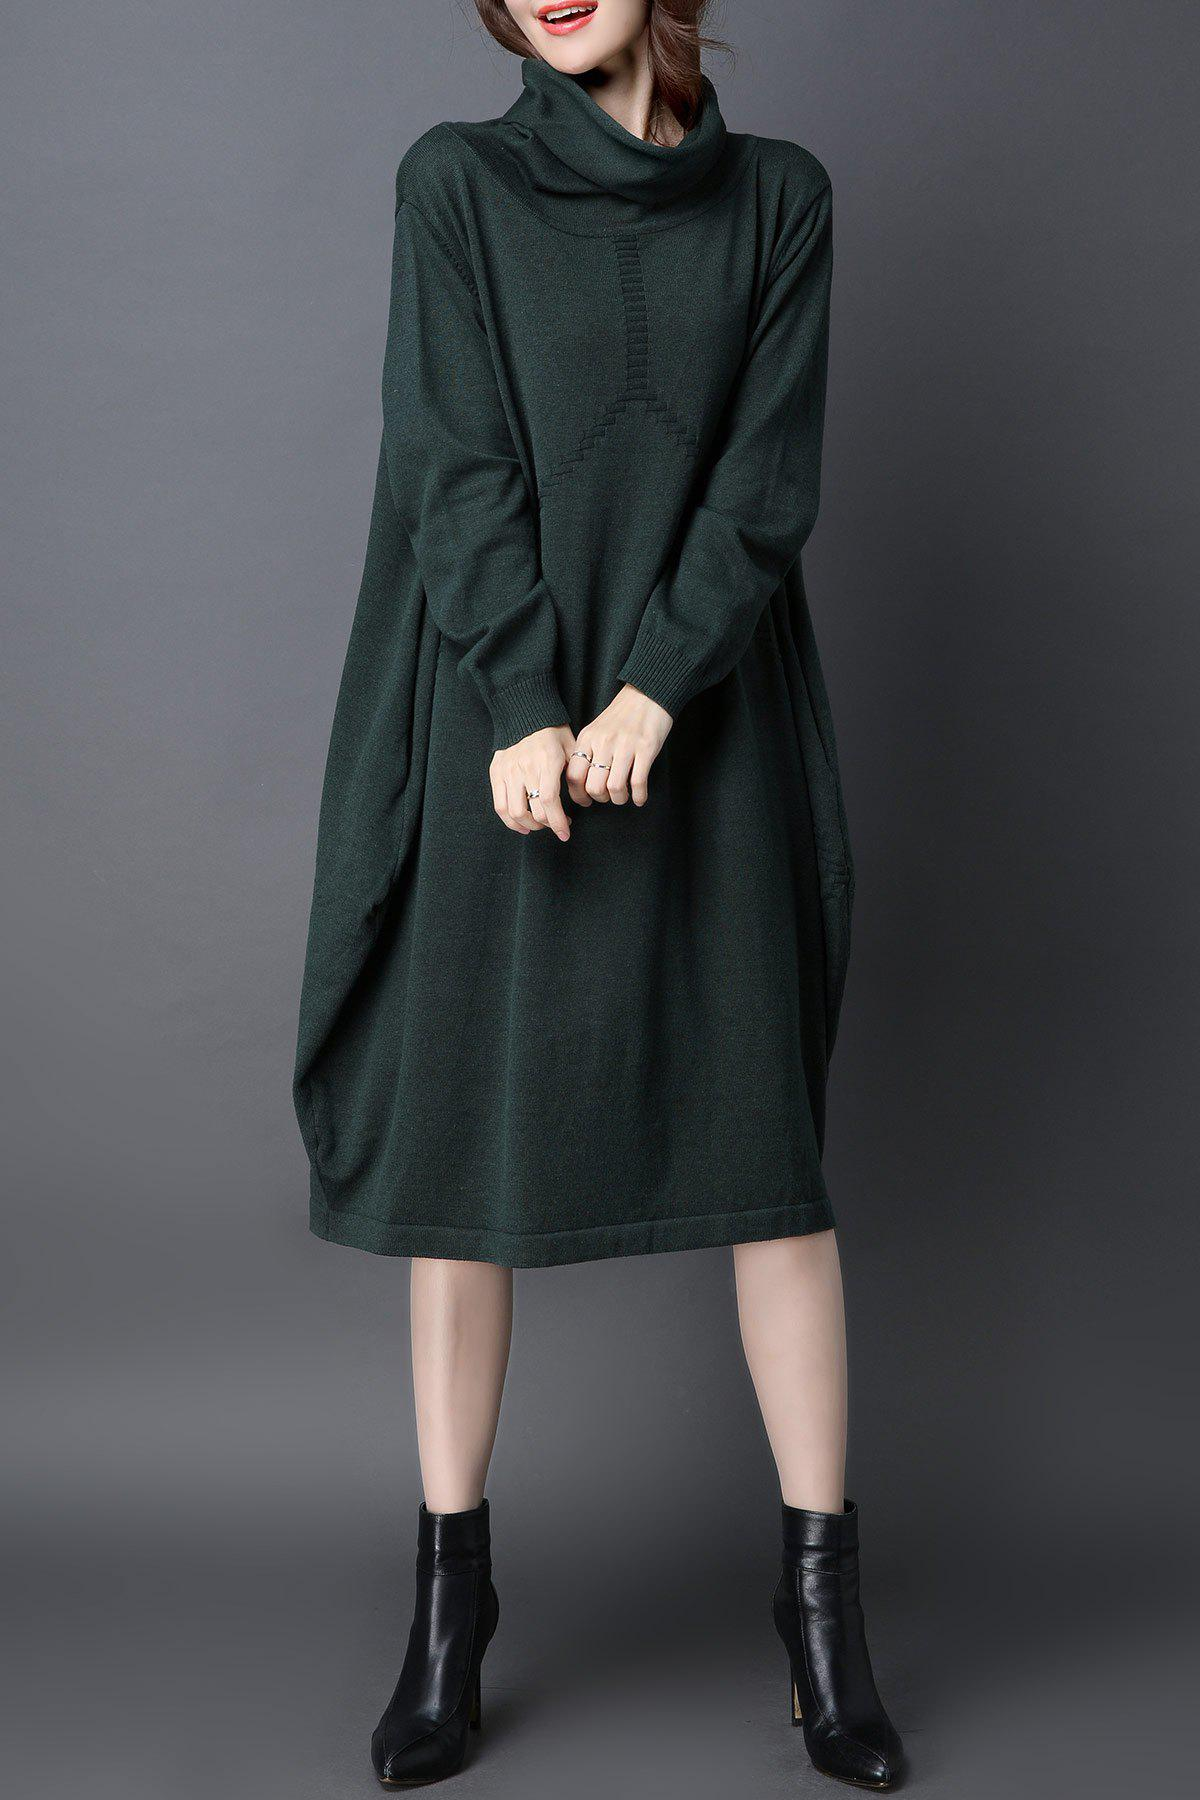 Shop Cowl Neck Oversized Knitted Dress